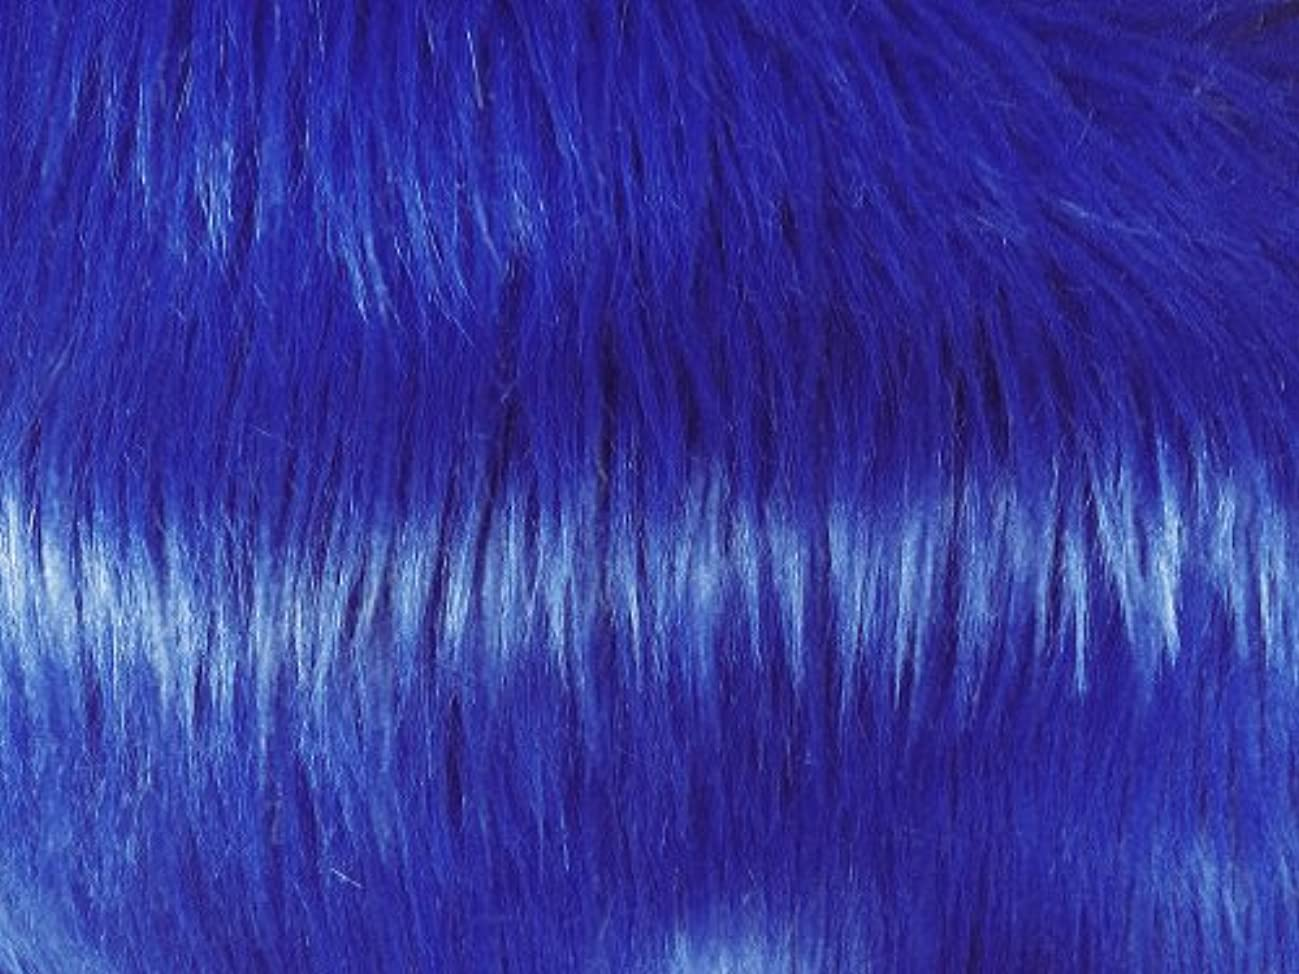 Solid Shaggy Faux/Fake Fur Fabric-Royal Blue-Long Pile 60